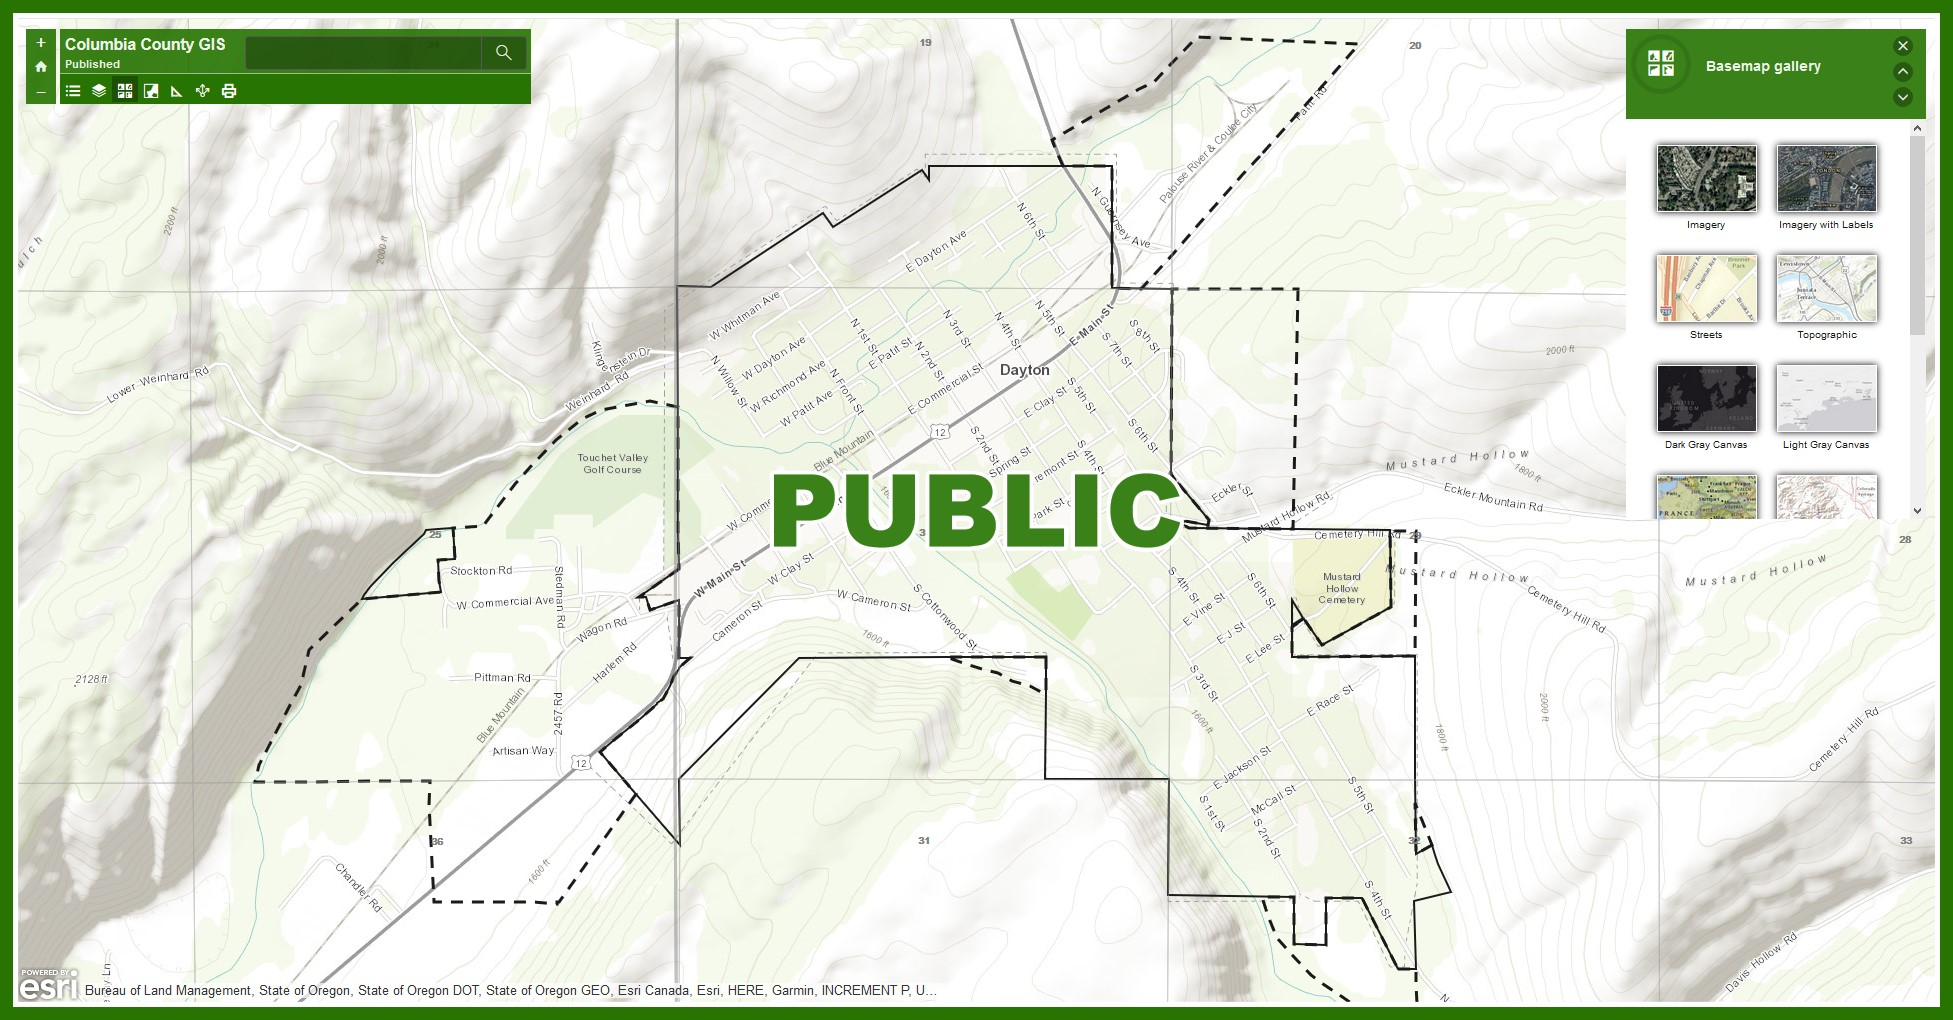 Columbia County, WA - Official Website - GIS